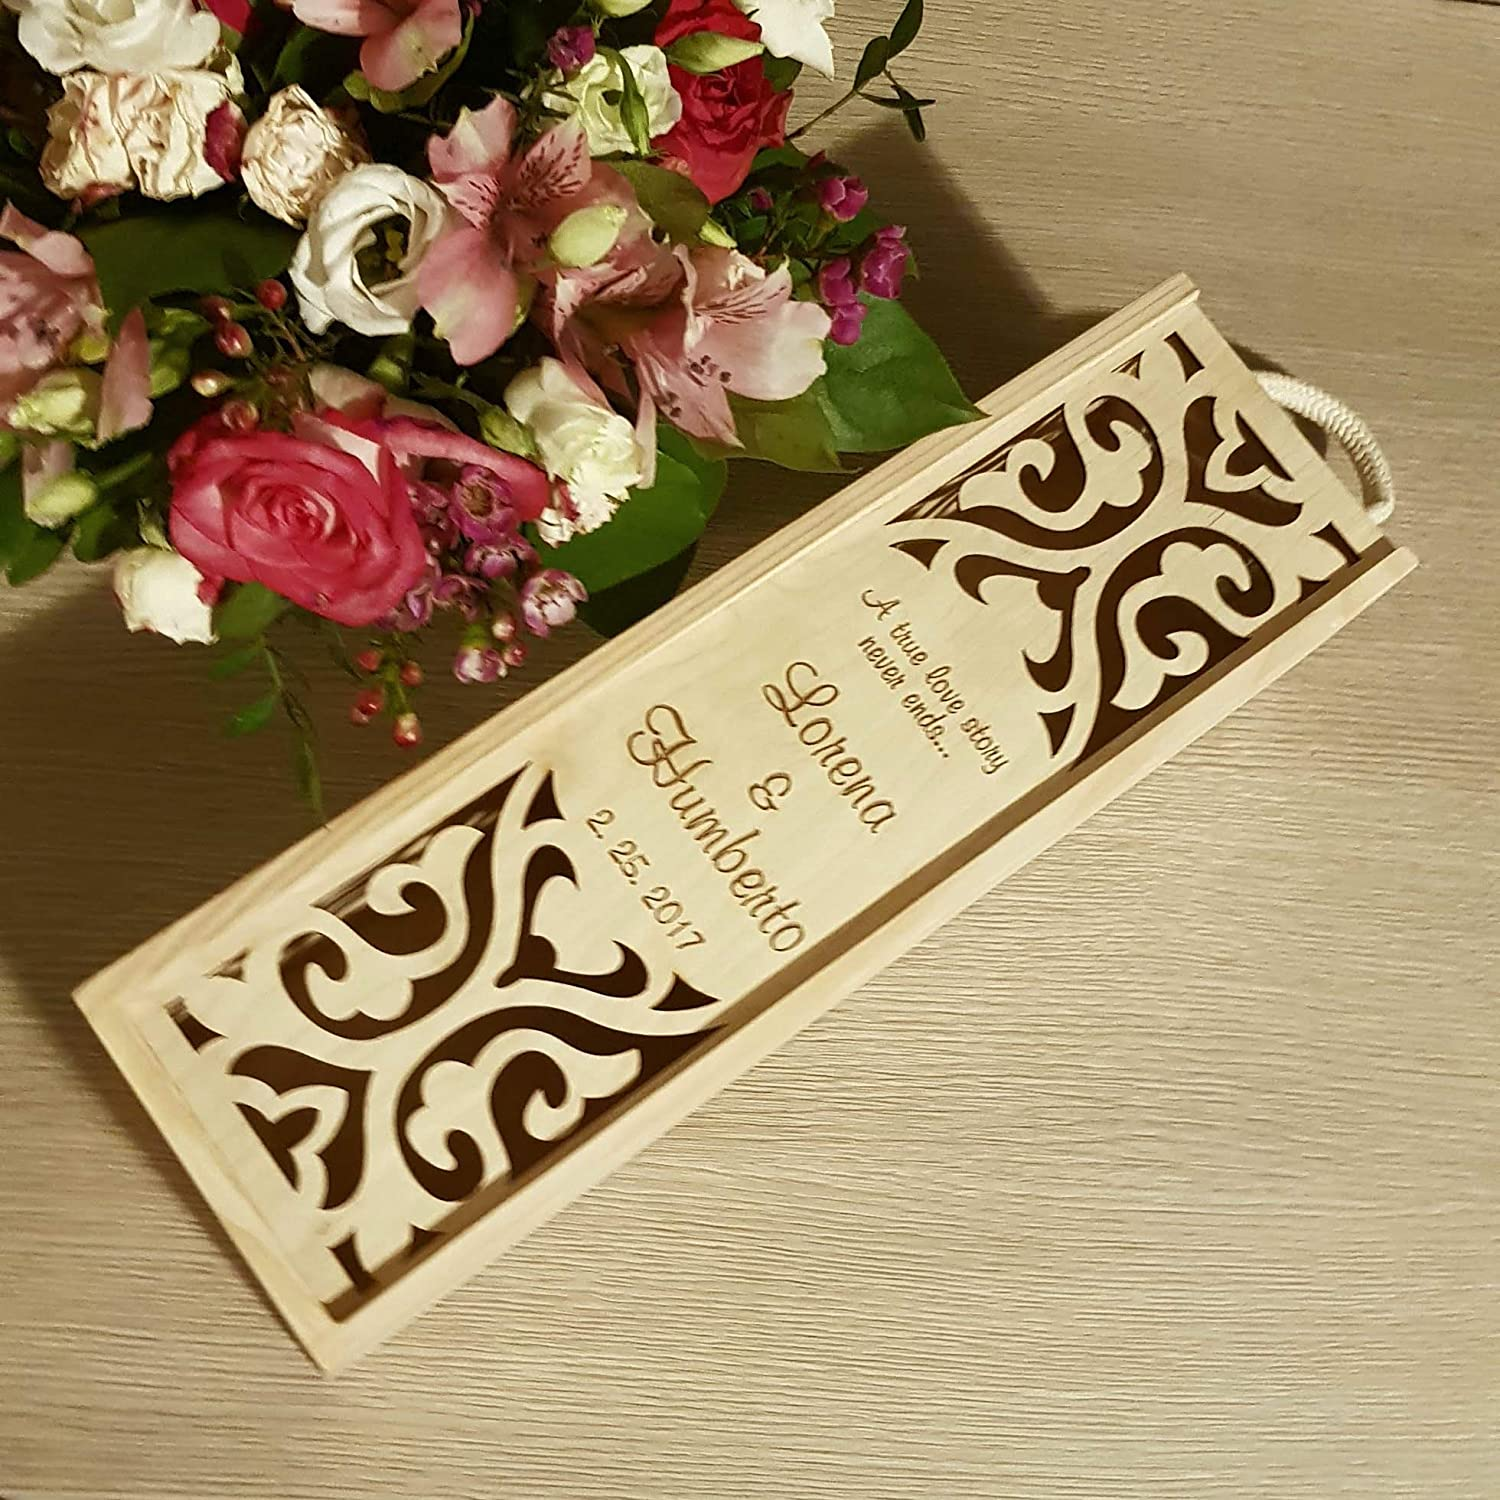 Personalized Max 86% OFF wine gift for wedding wooden custom engraved b Fashion one